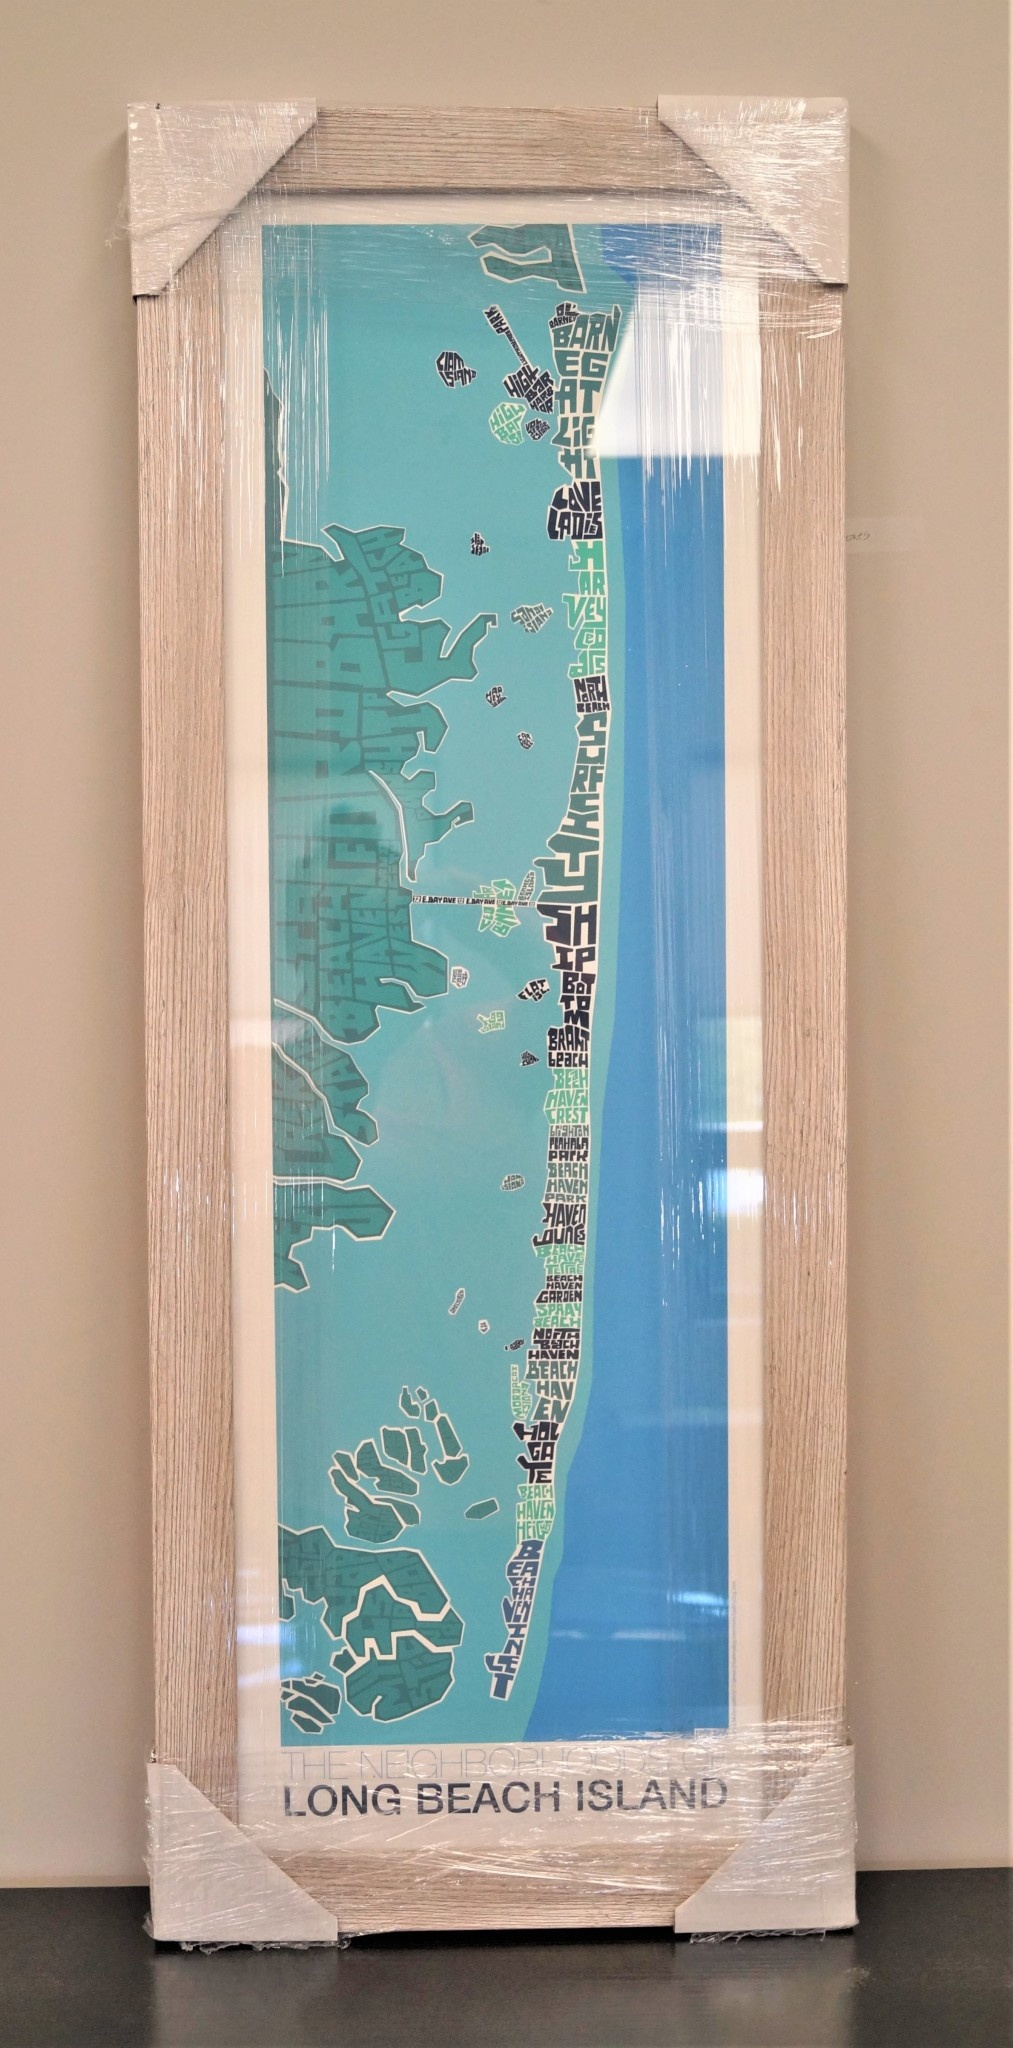 I Lost My Dog LBI Type Map Blue w/ White Distressed Frame 12x36